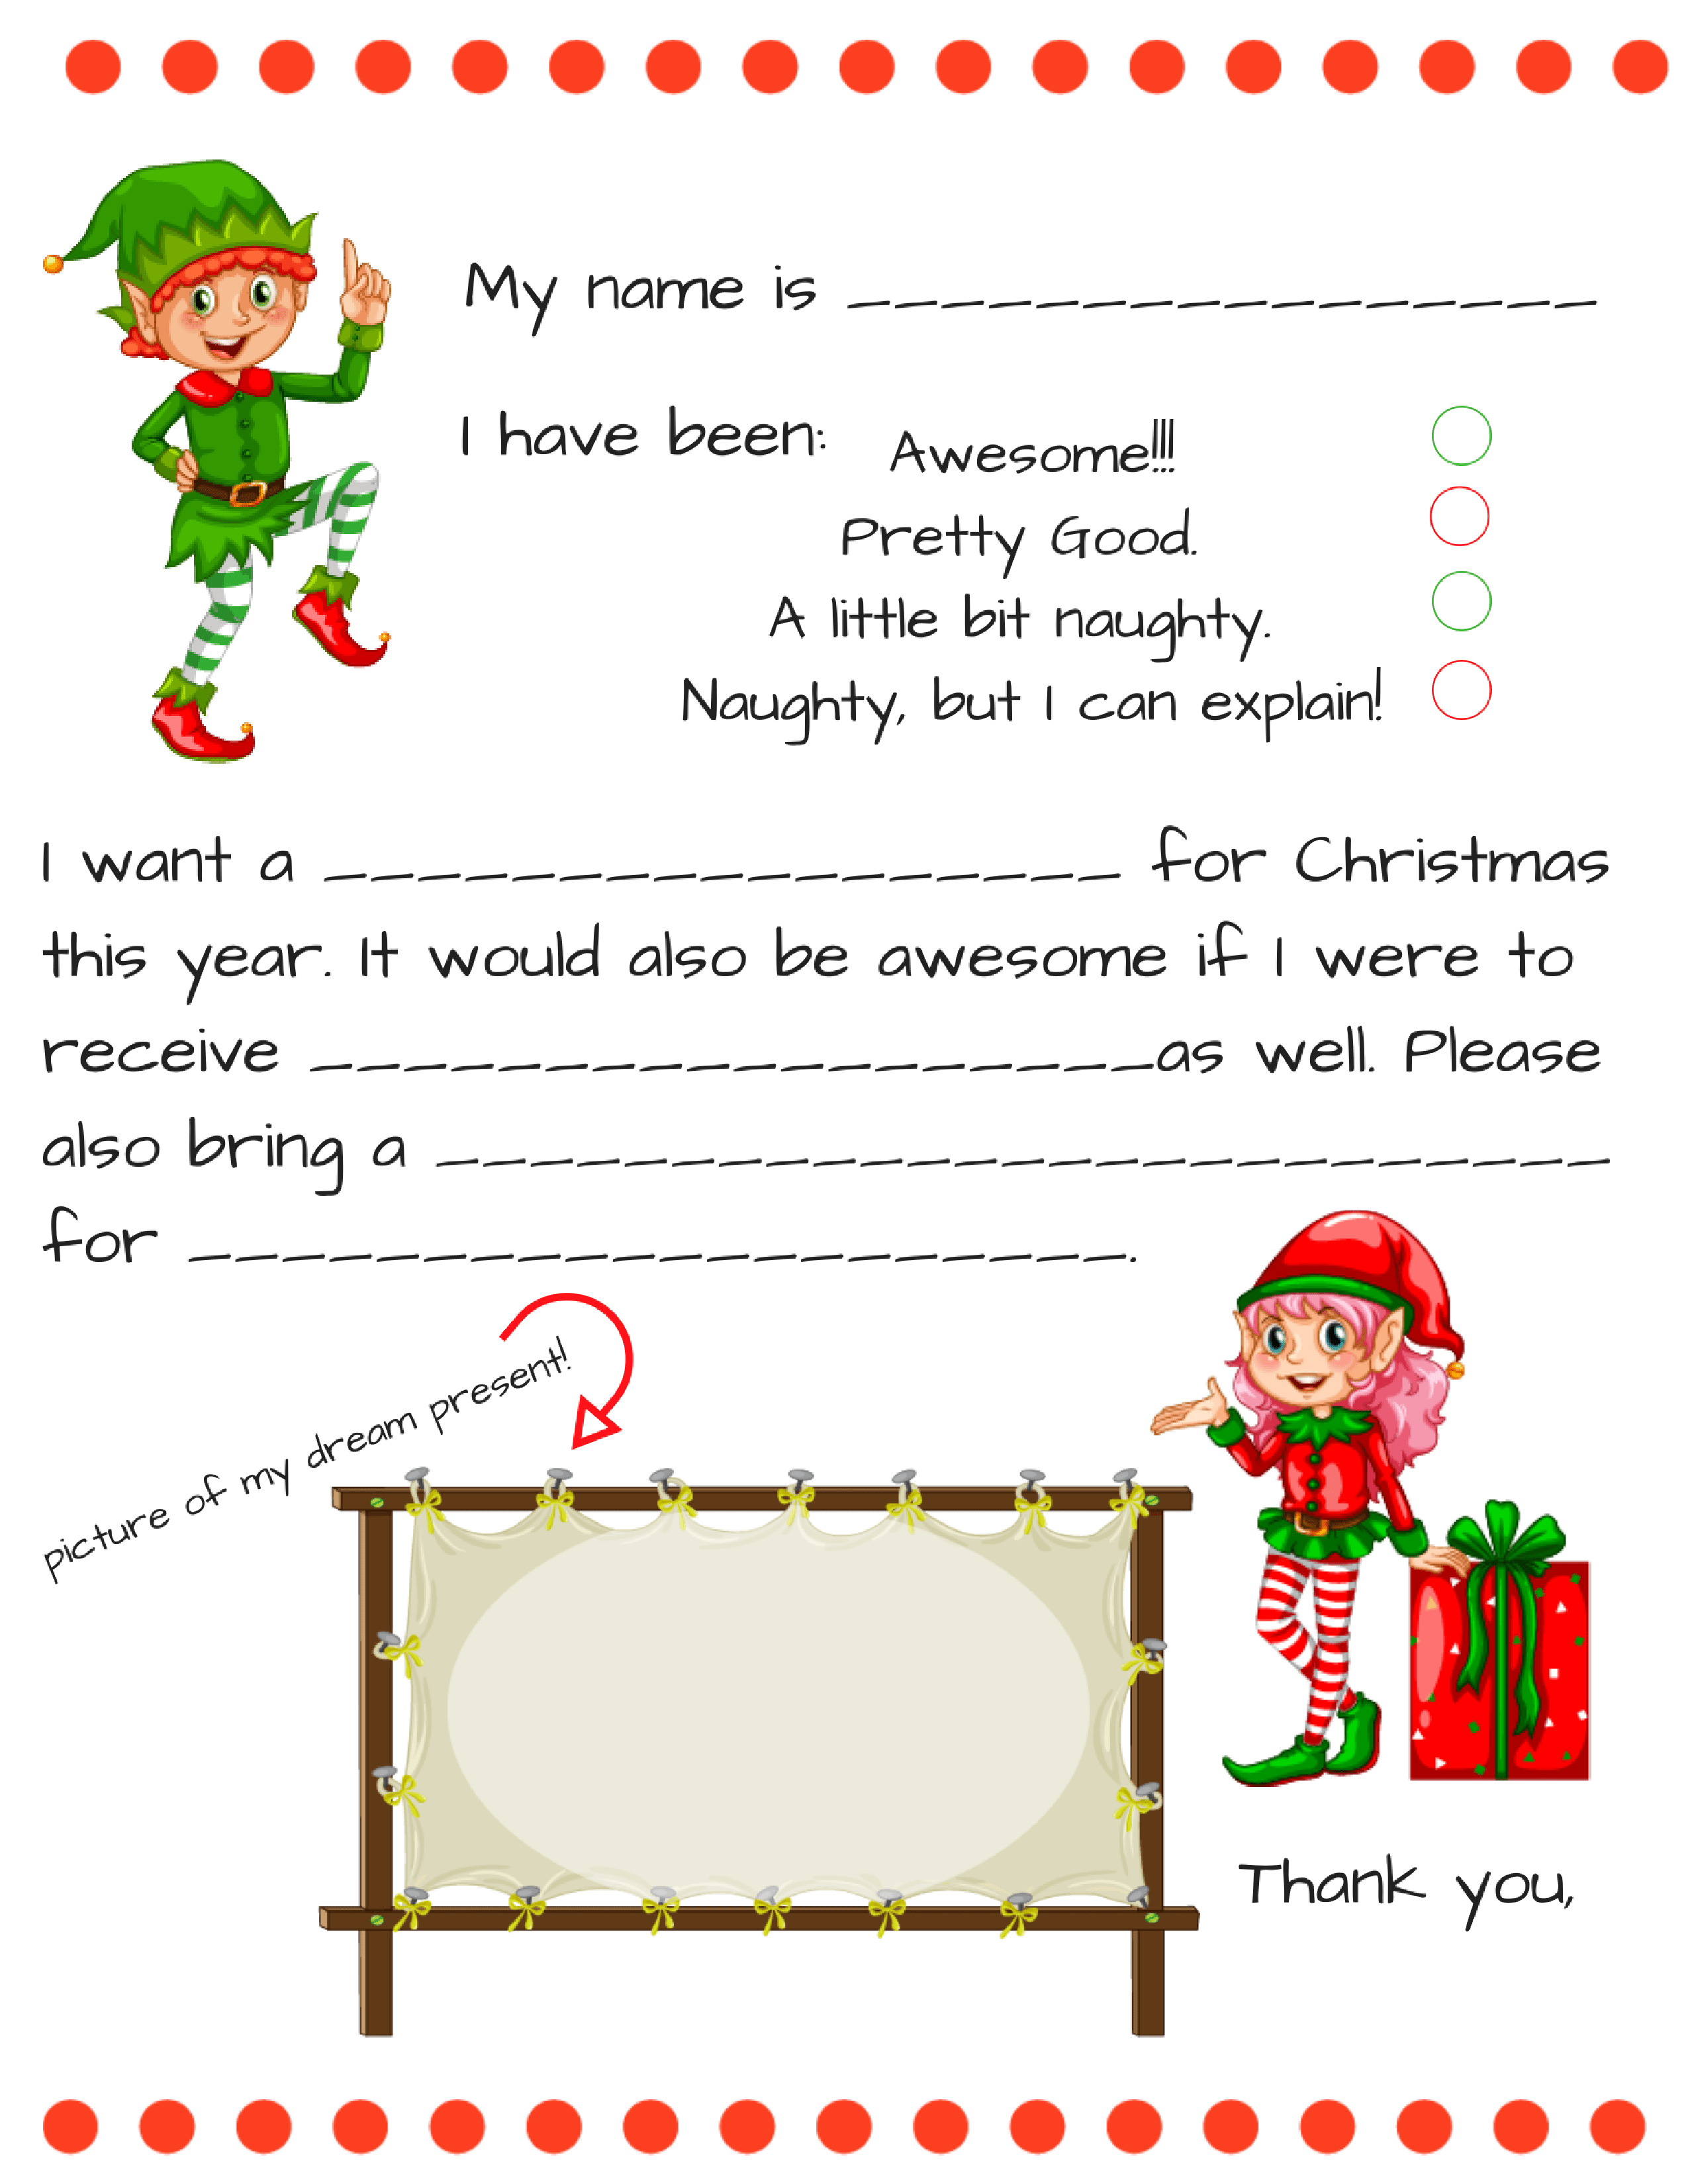 free dear santa letter printable fill in blank santa letter for younger kids plus older